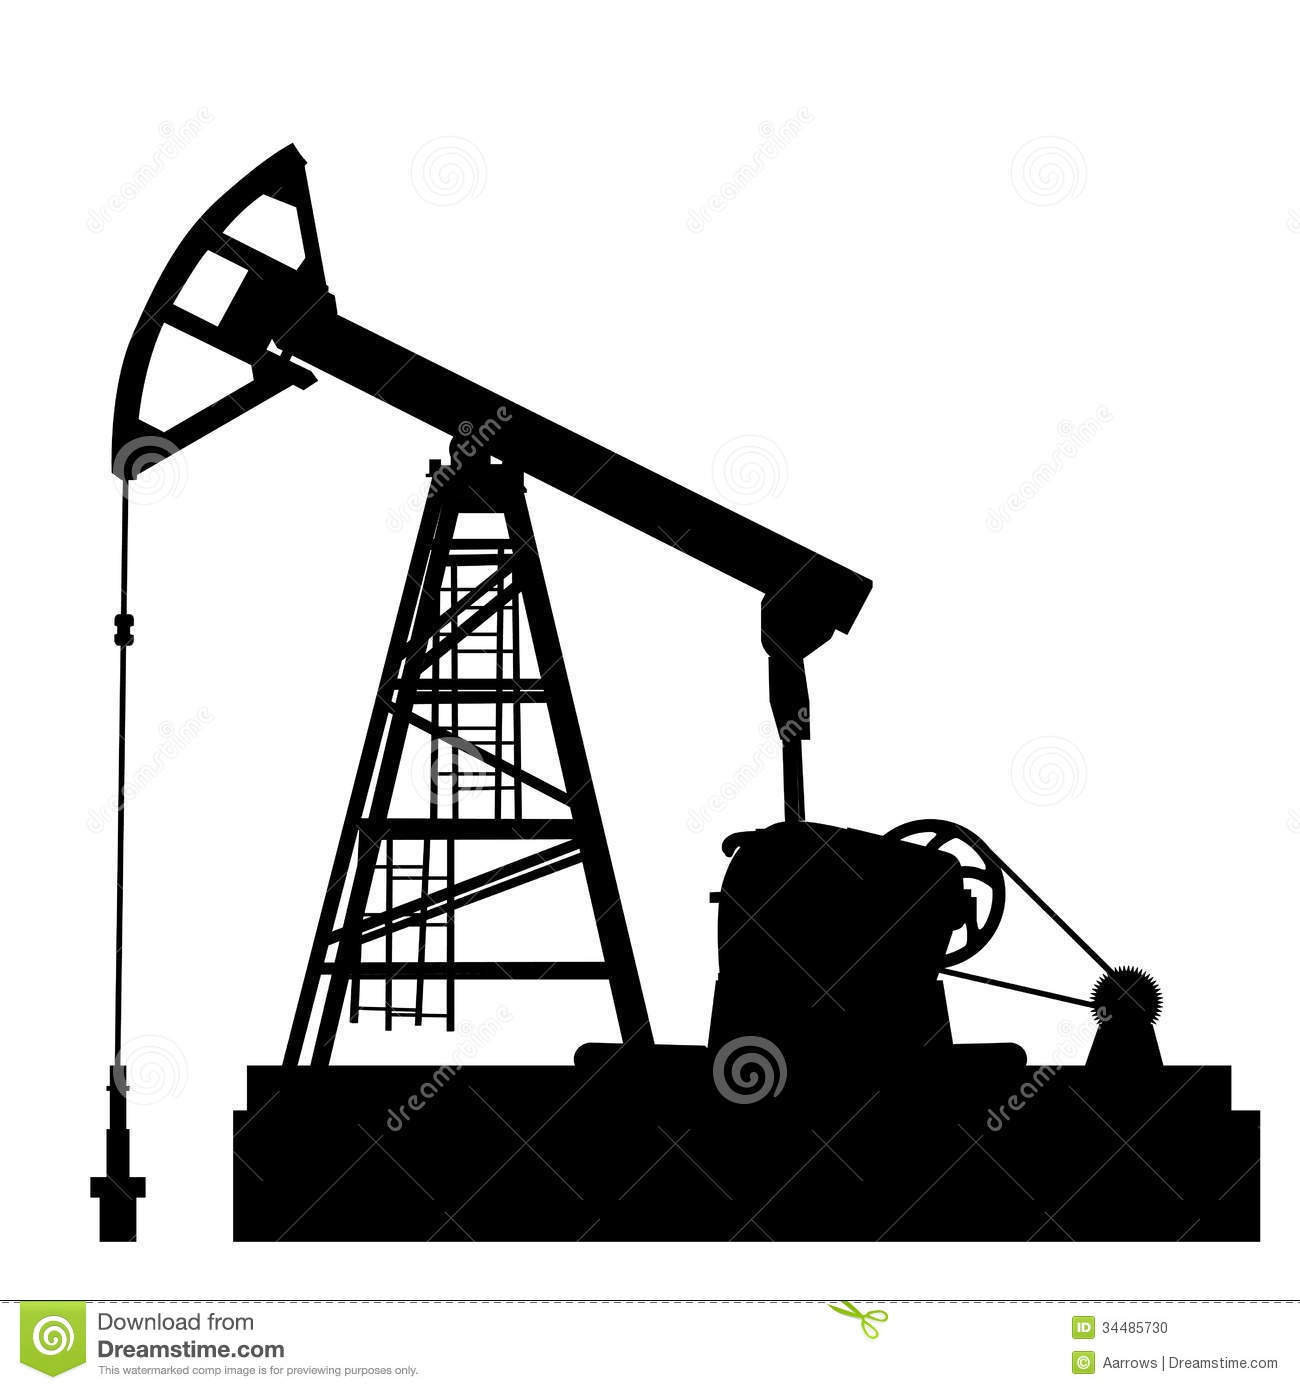 Oil pump jack. Oil industry equipment. Vector illustration.